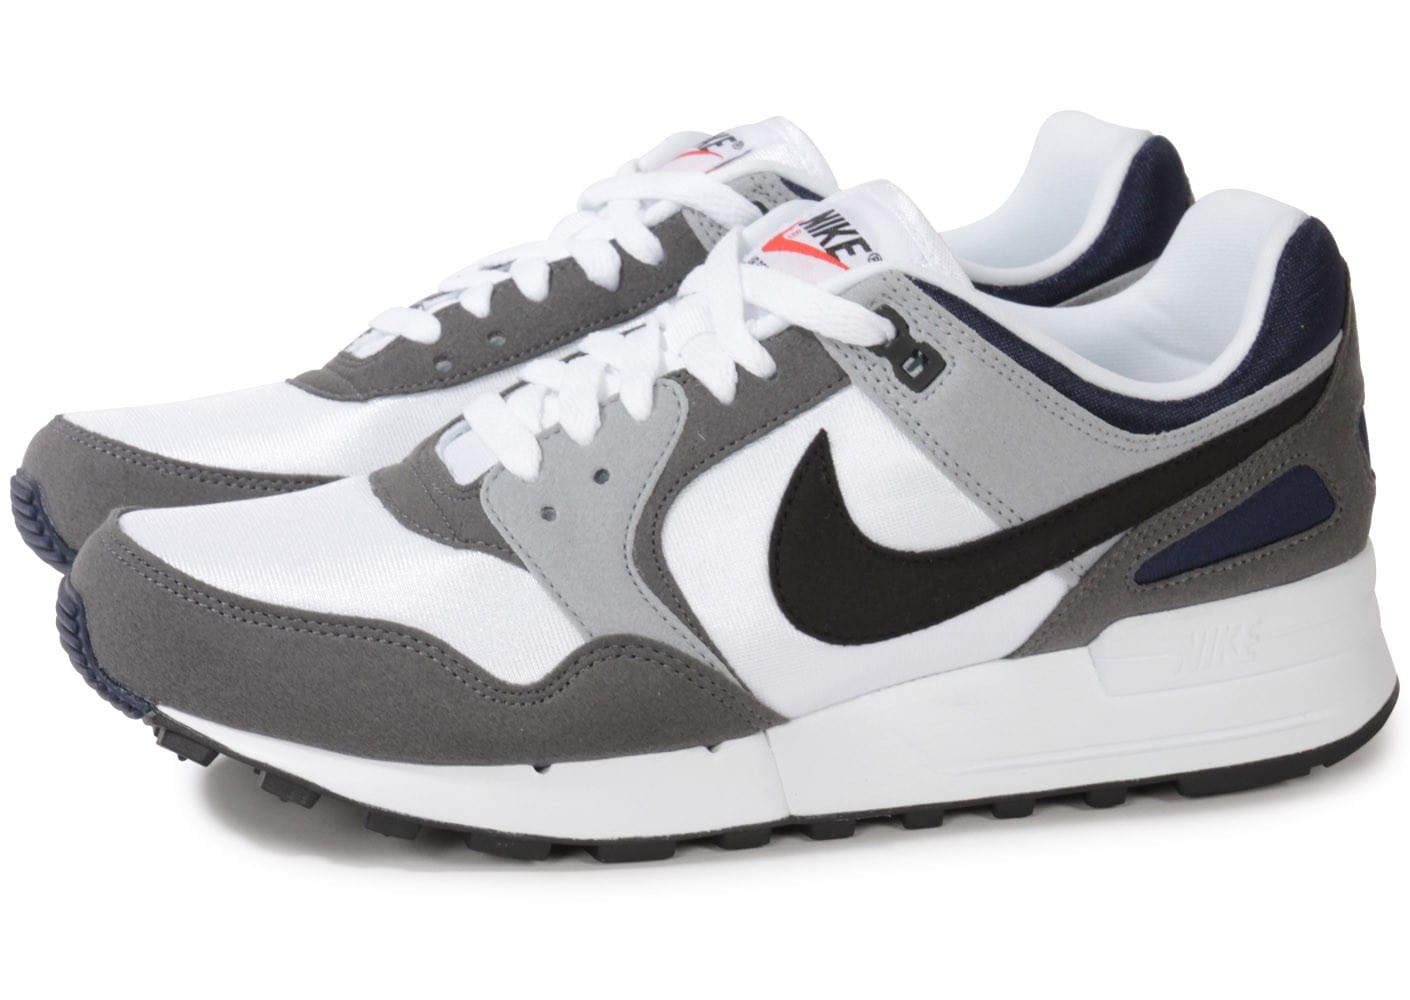 nike air pegasus 89 grise blanche chaussures homme chausport. Black Bedroom Furniture Sets. Home Design Ideas